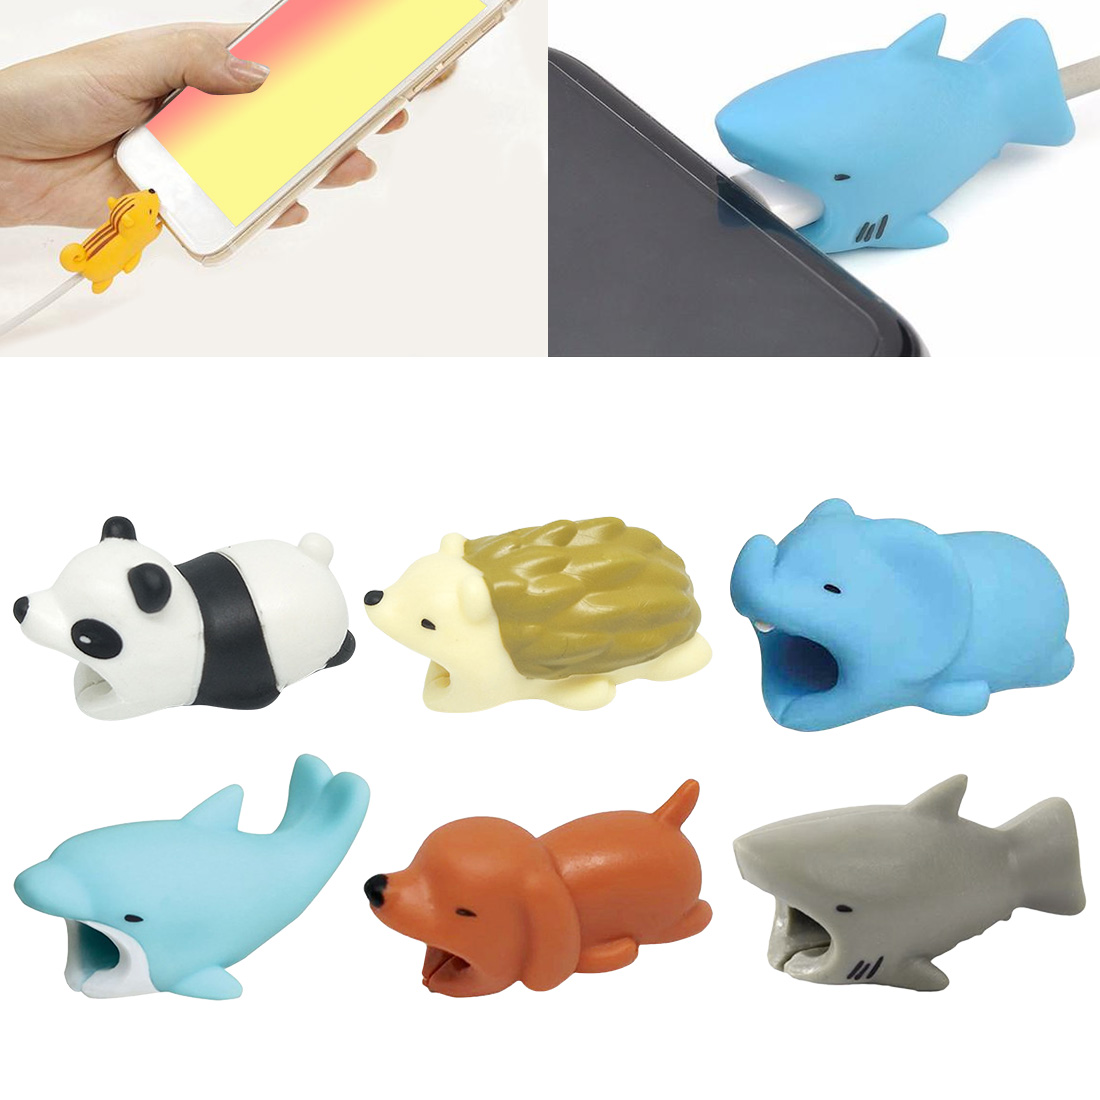 Cartoon Animal Style Winder Mobile Phone Cable Protective Sleeve USB Charging Cable Wired Earphone Cable Protector